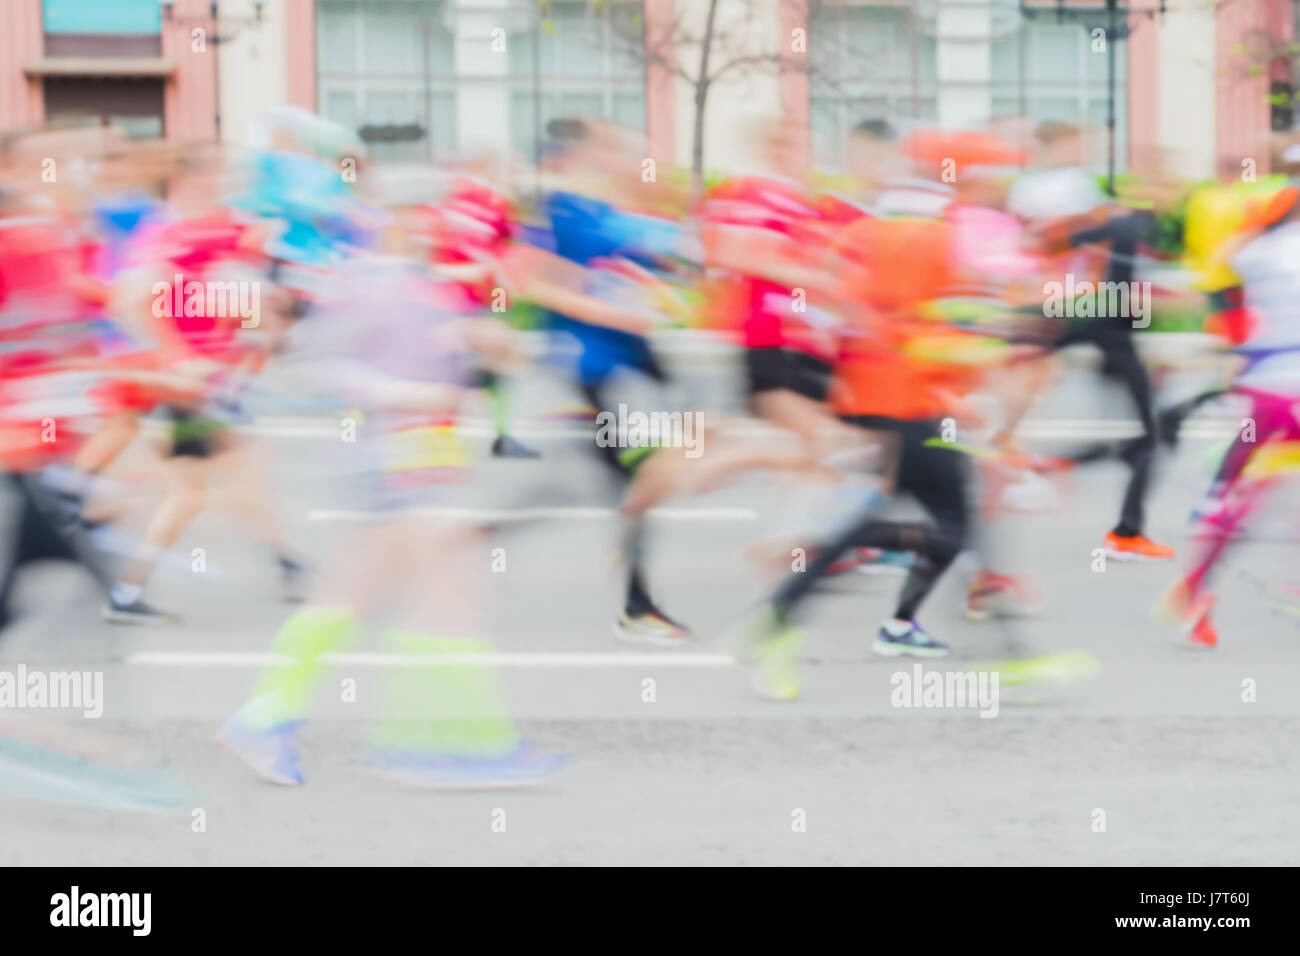 Abstract background of colored group of running athletes on street, city marathon, blur effect, unrecognizable faces. - Stock Image